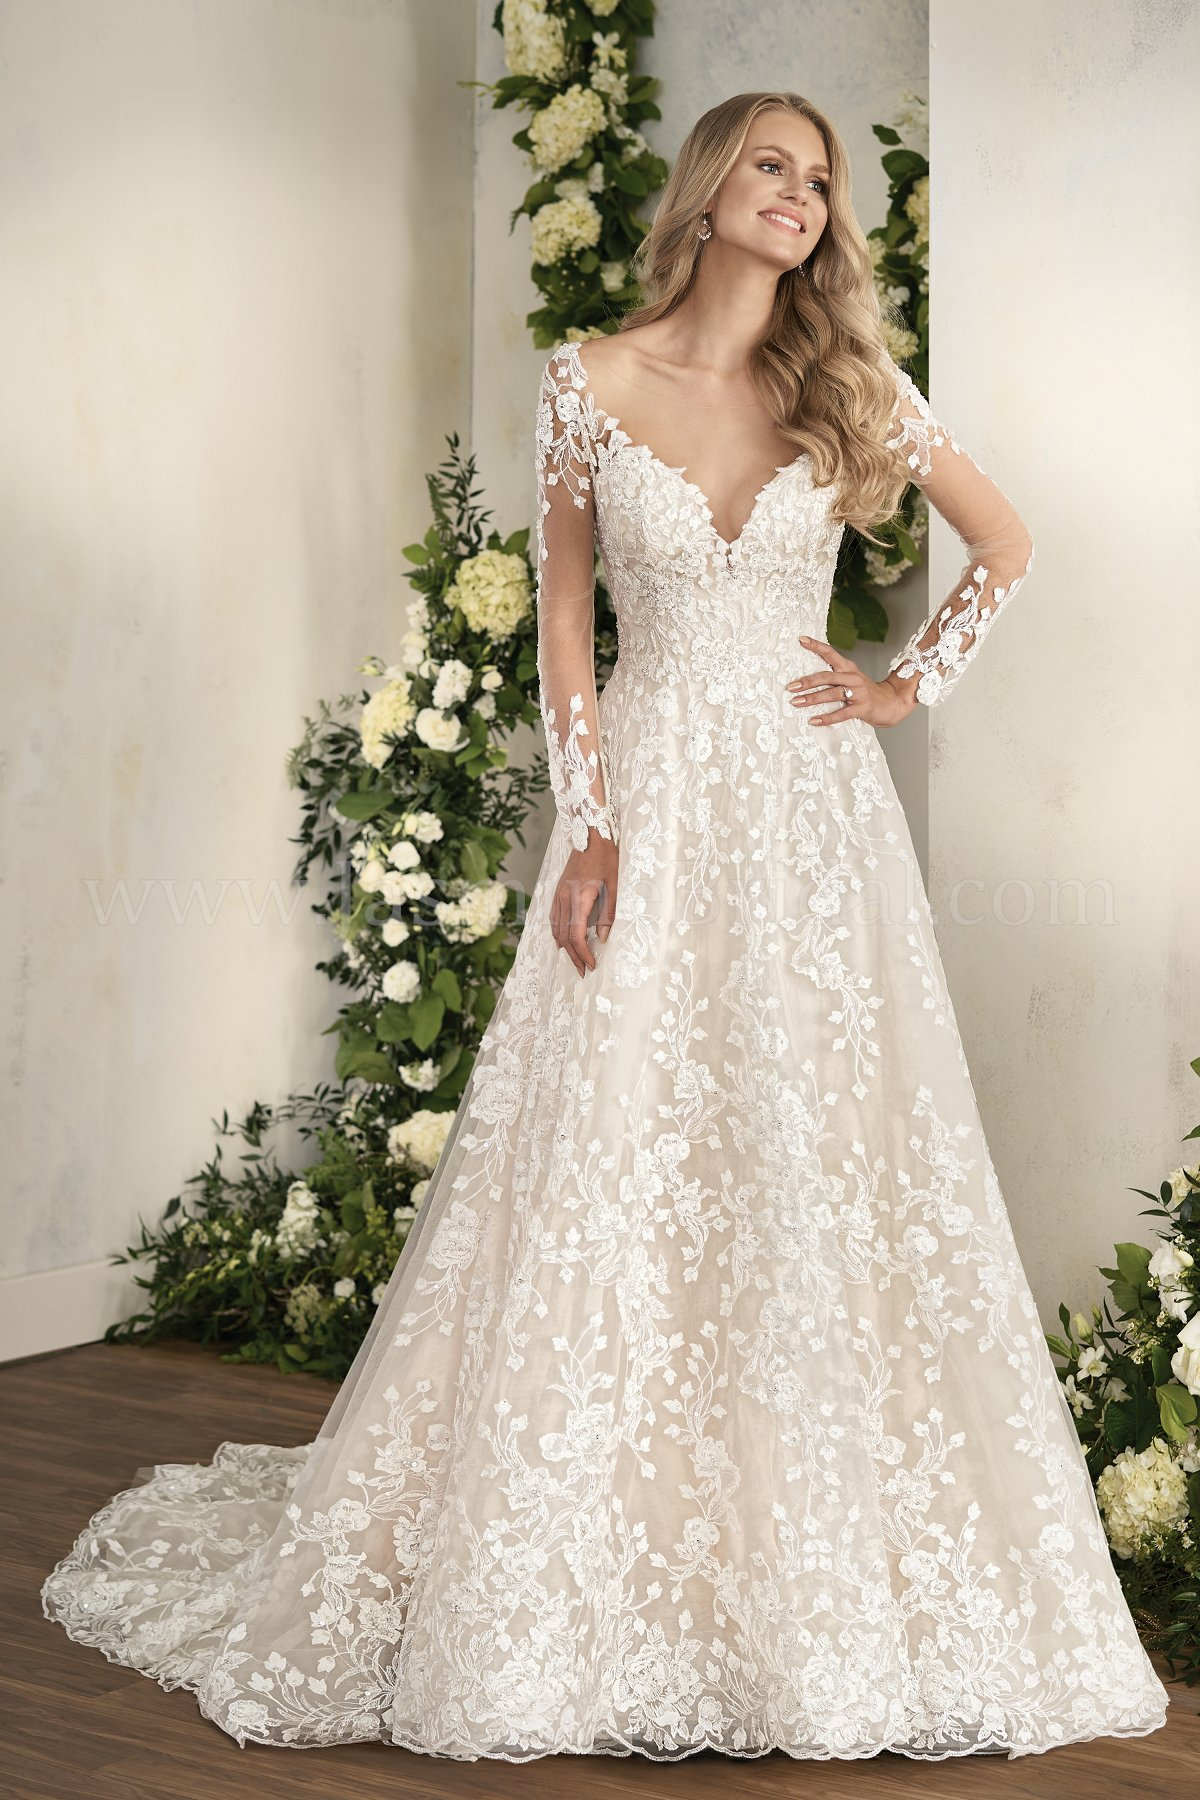 T202012 Illusion Neckline Embroidered Lace Ball Gown Wedding Dress with Illusion Sleeves